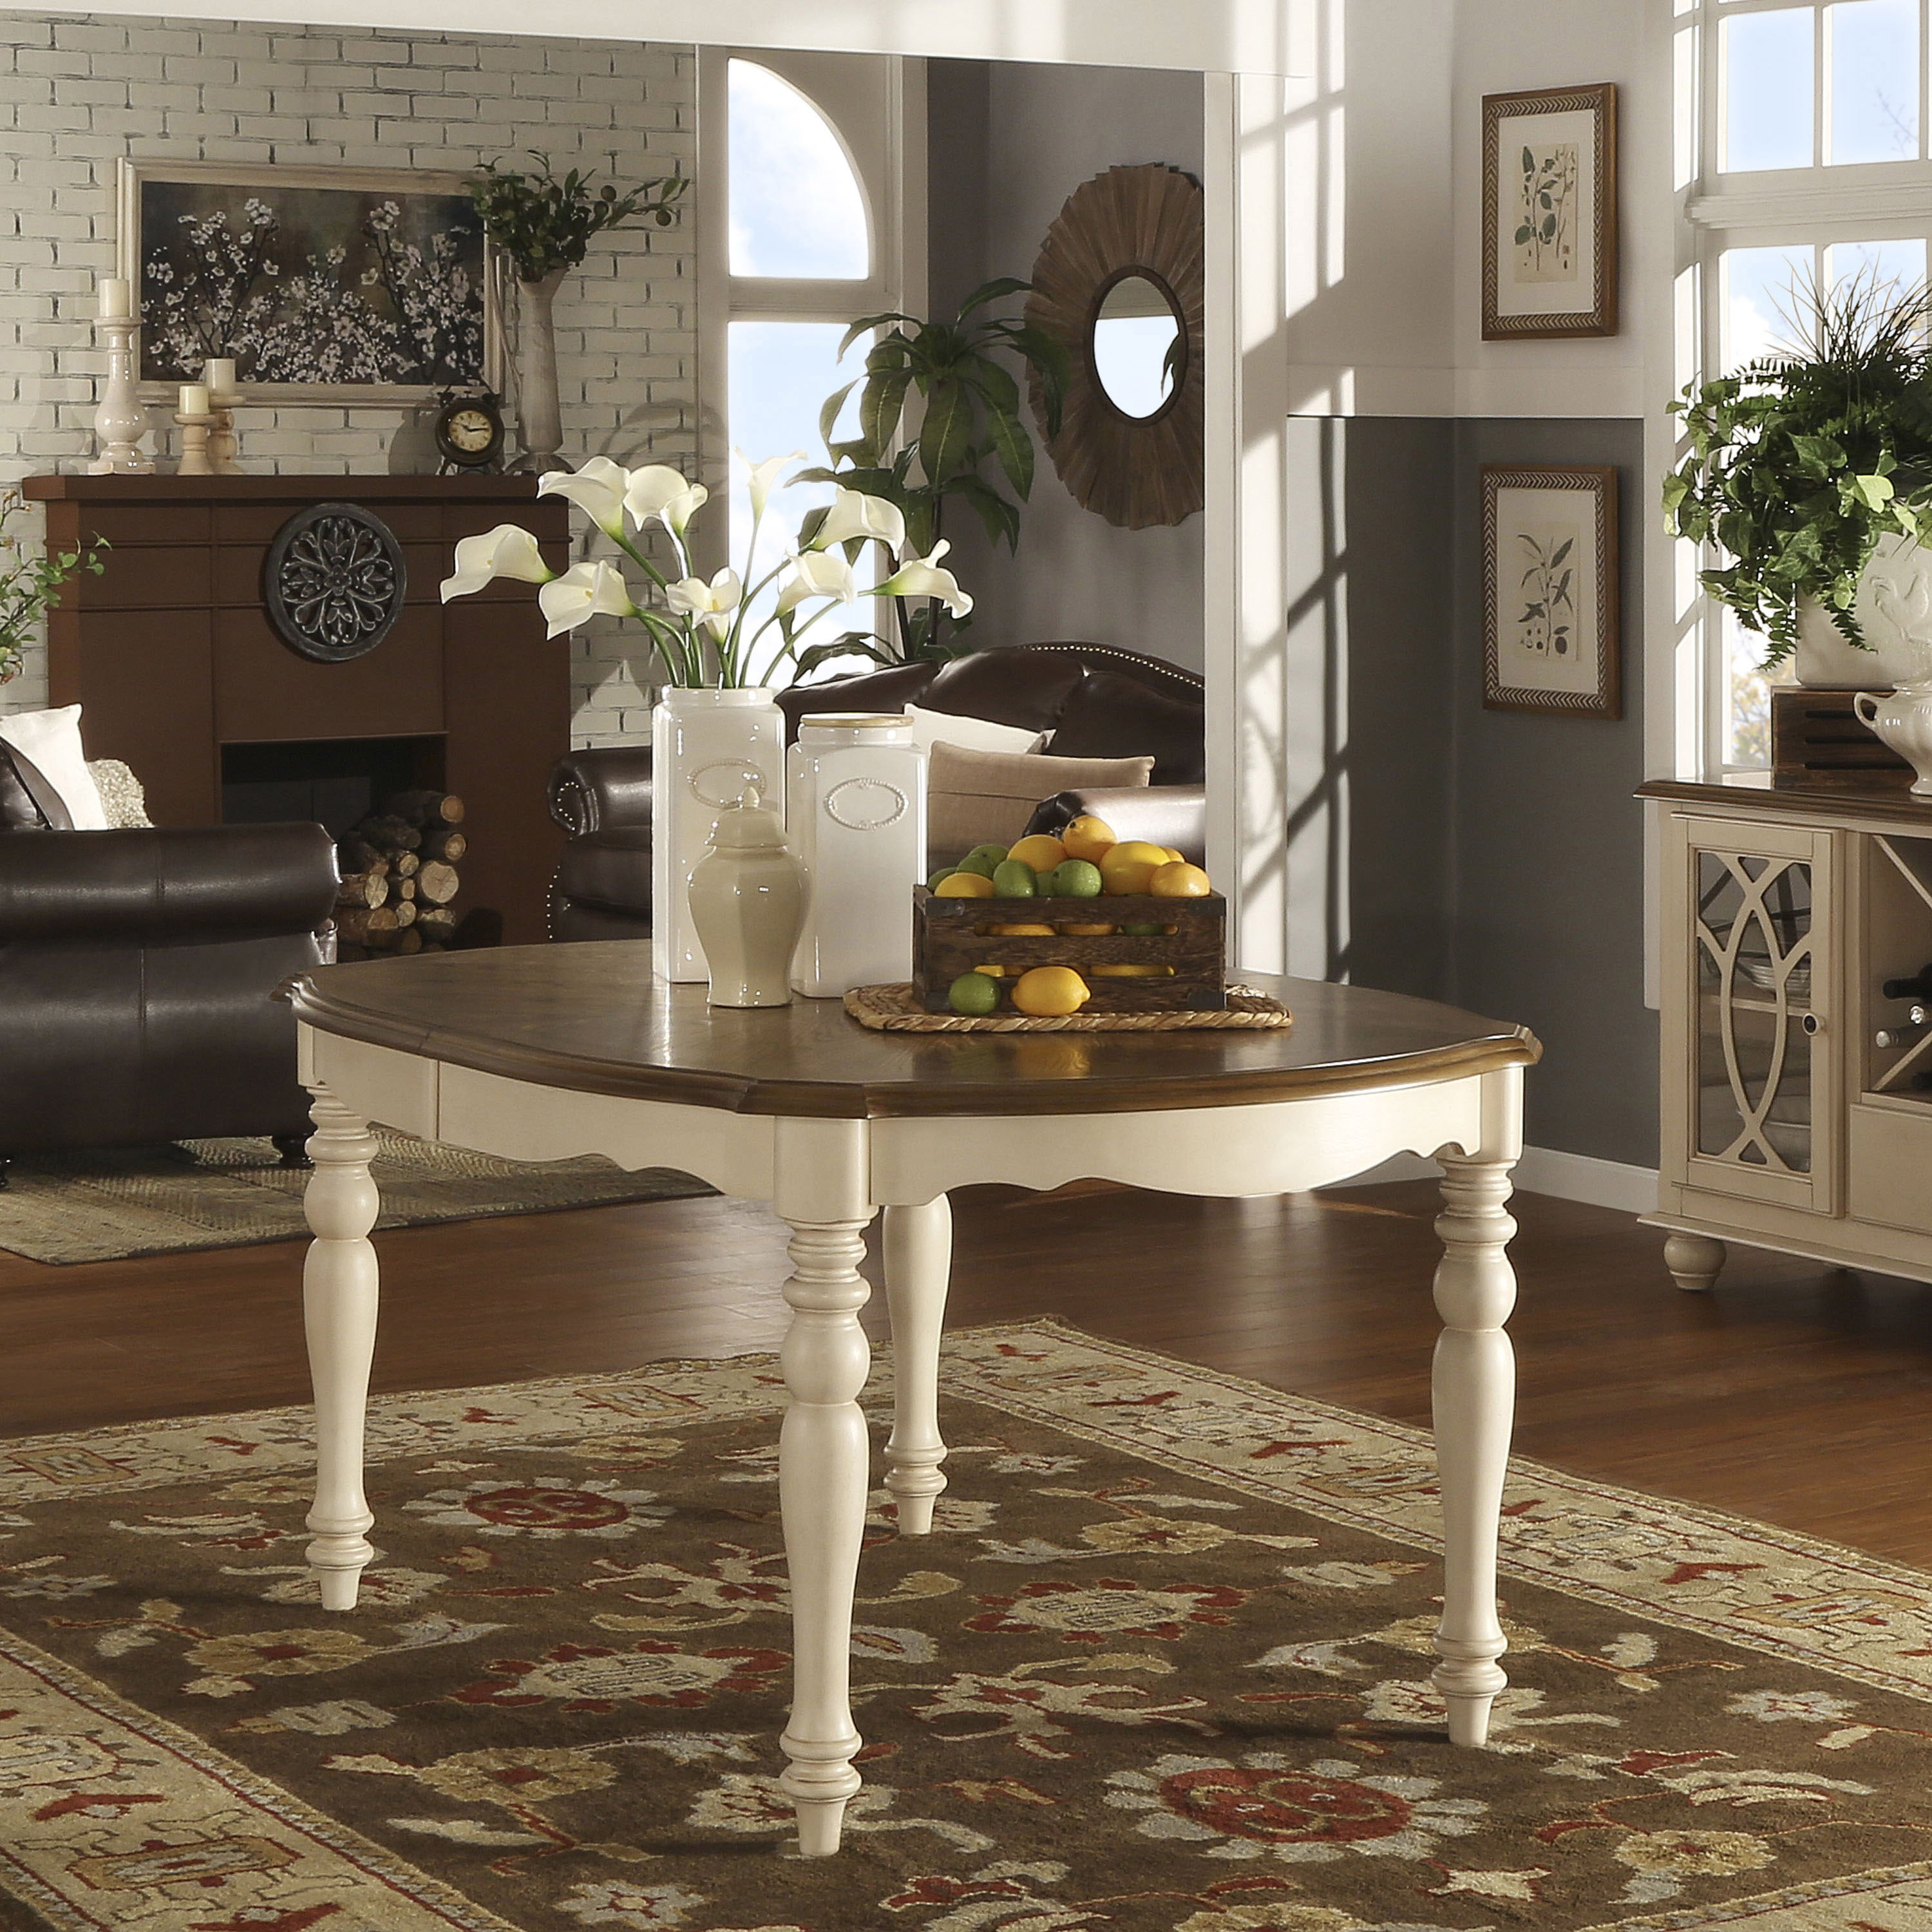 Merveilleux Shayne Country Antique Two Tone White Extending Dining Table By INSPIRE Q  Classic   Antique White